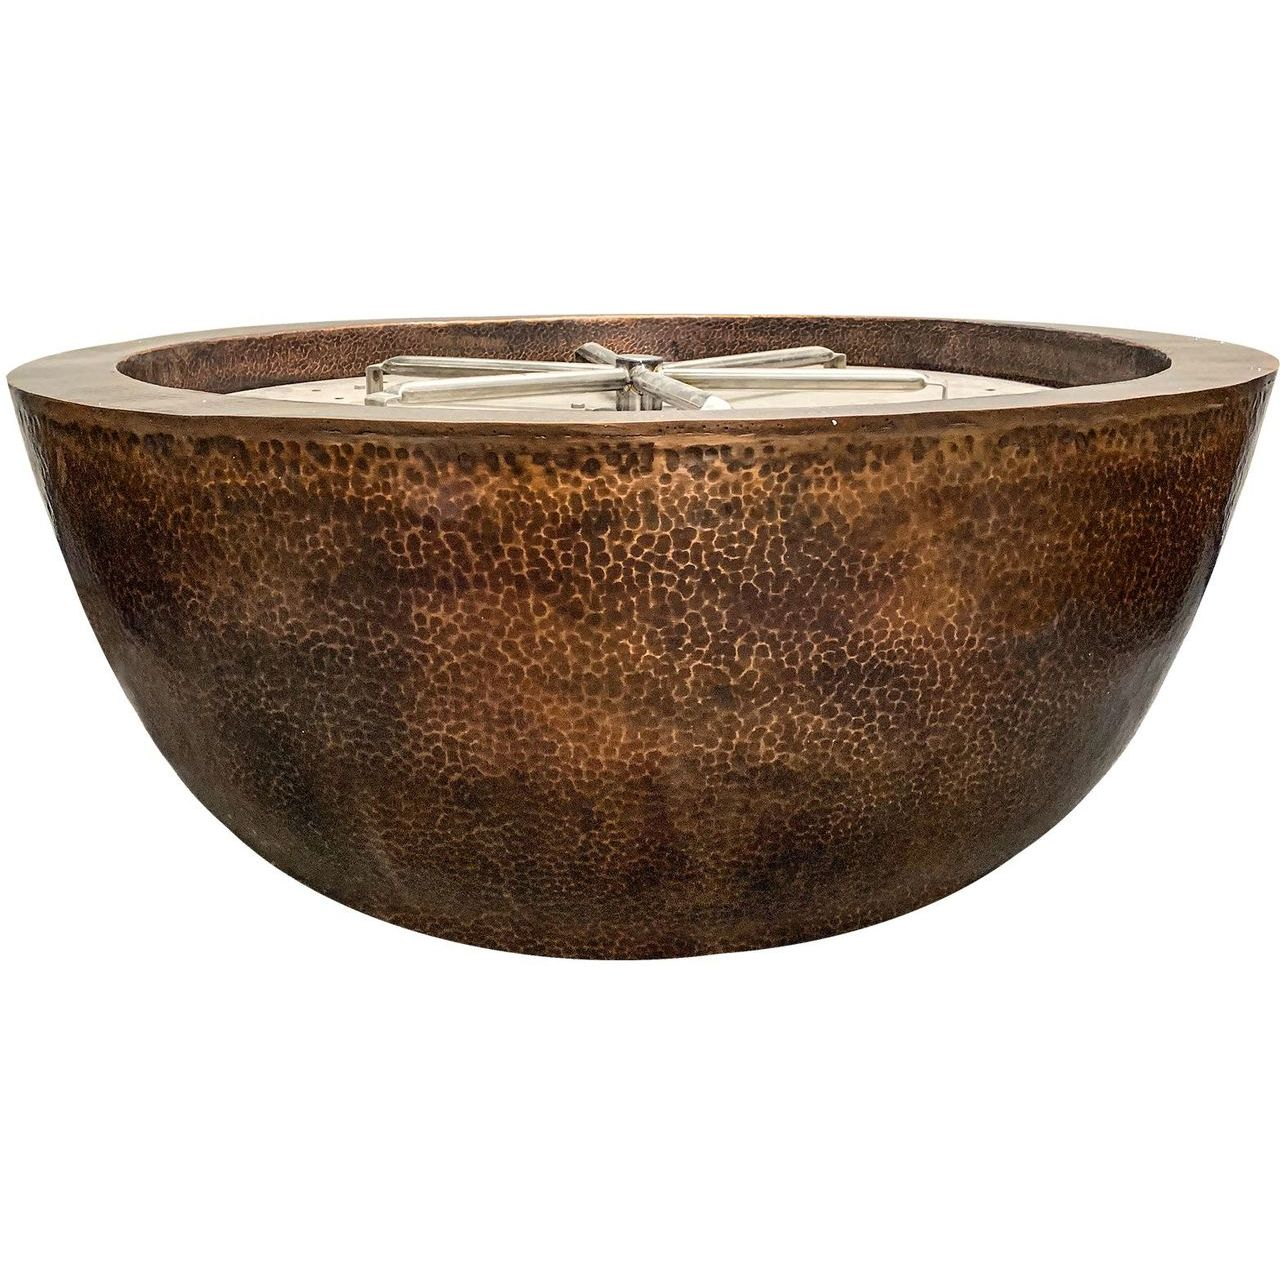 Prism Hardscapes Moderno 1 Fire Bowl in Copper - LP